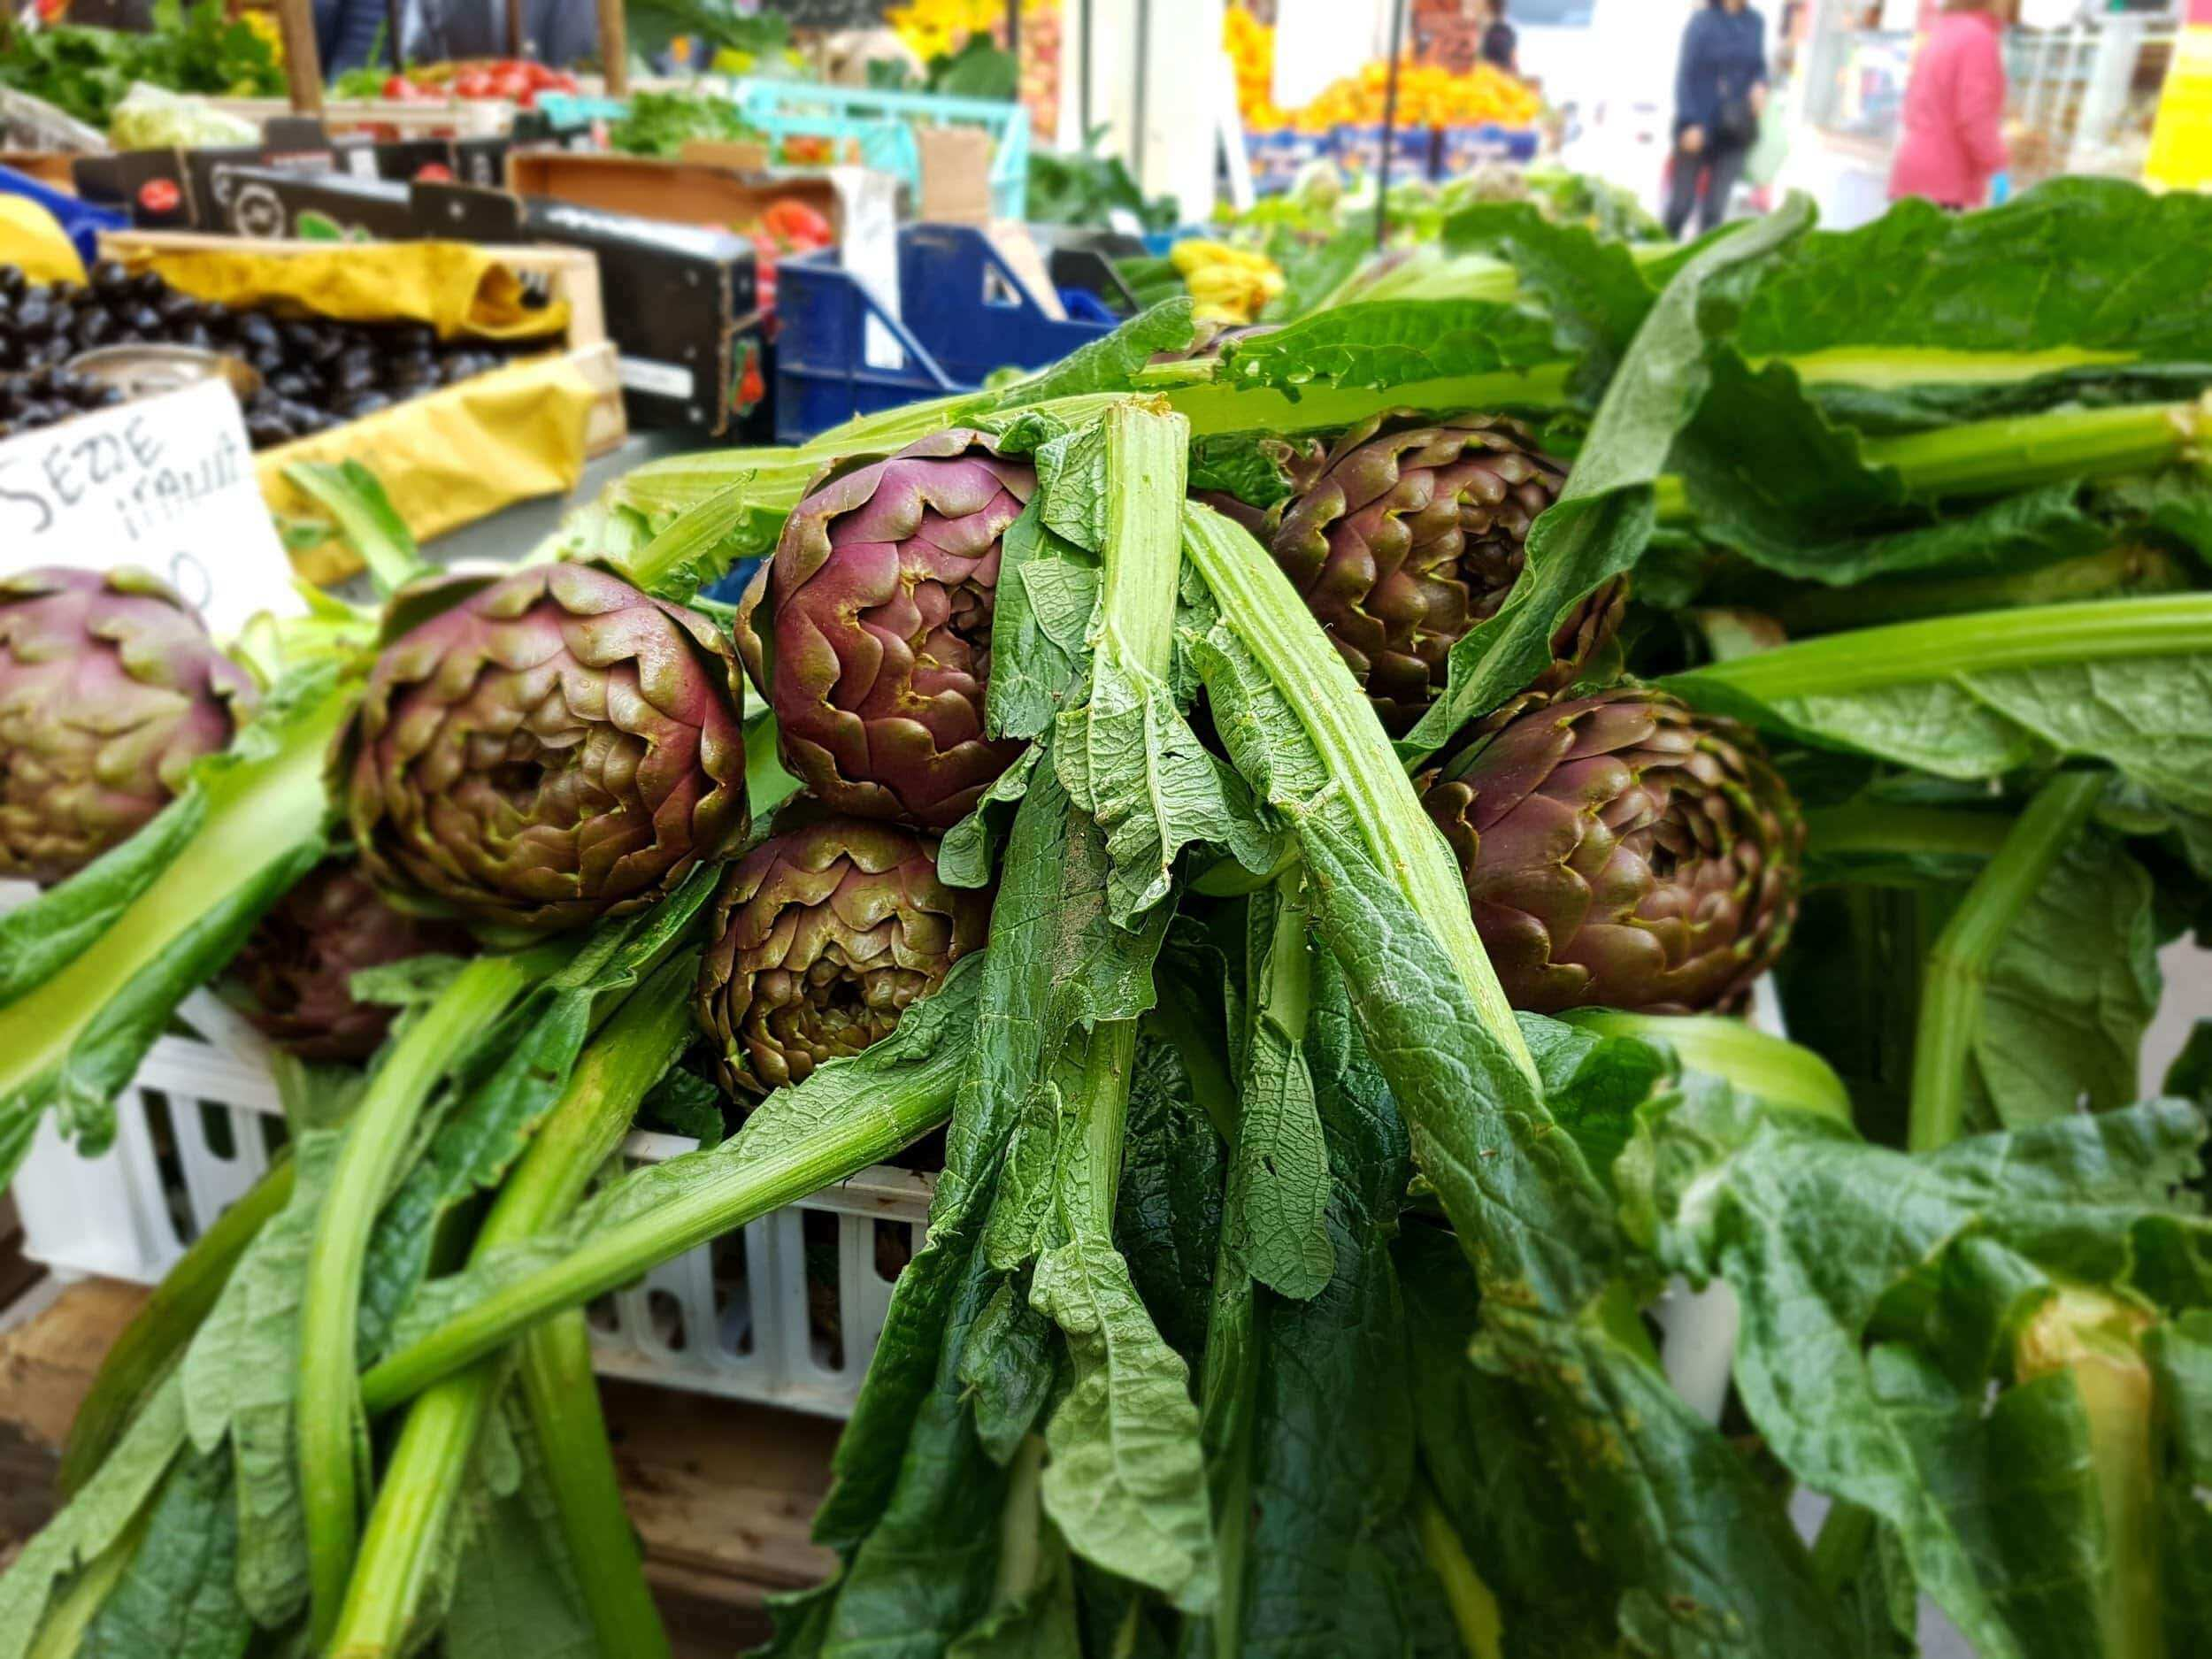 artichokes on sale at the market